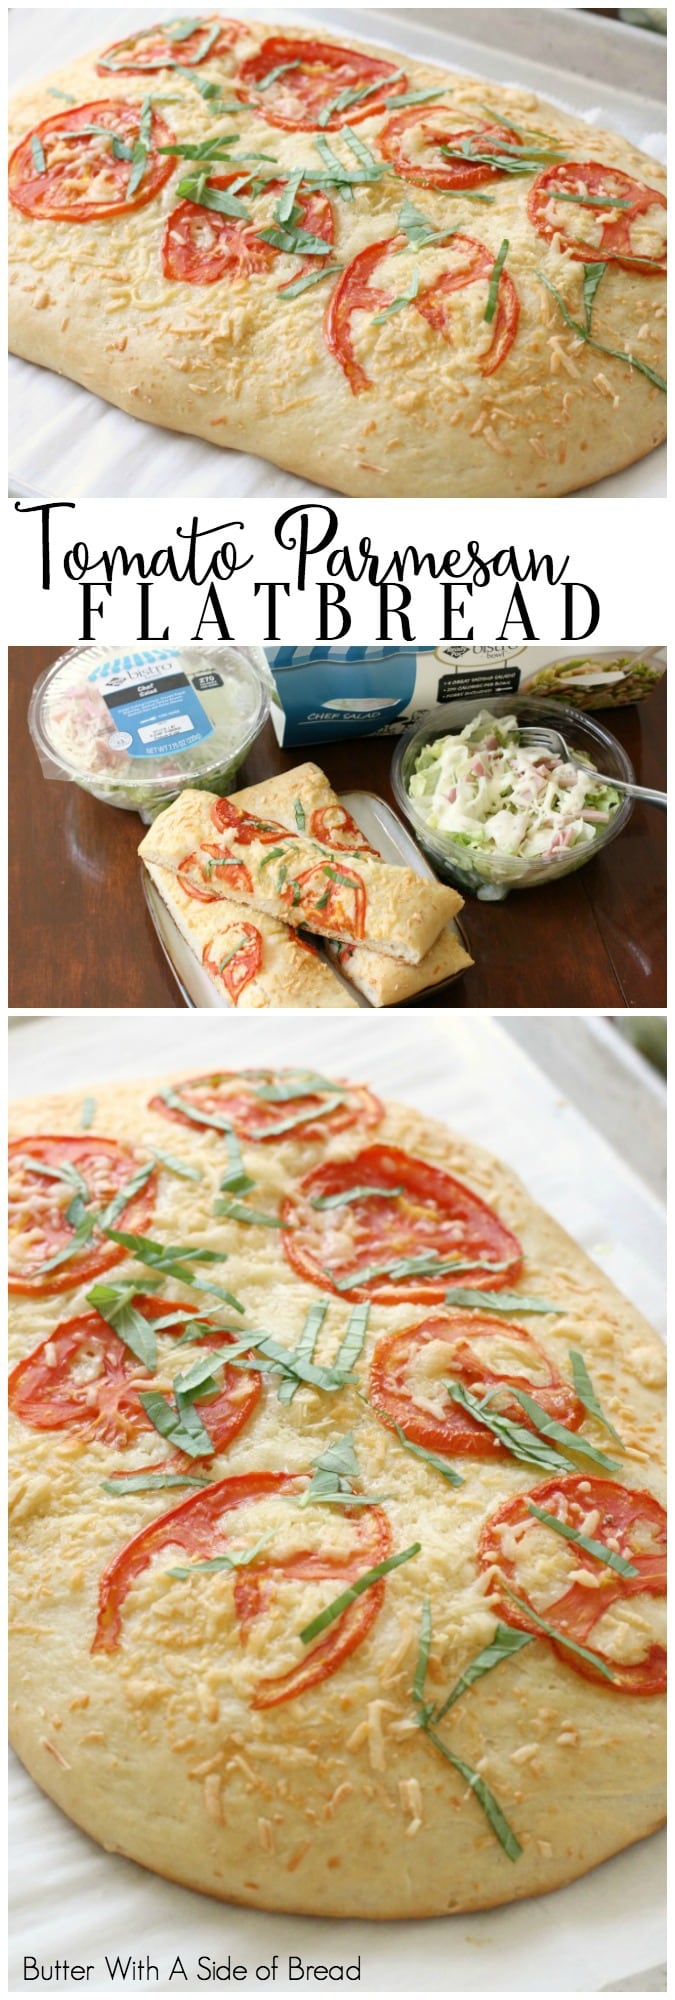 Tomato Parmesan Flatbread recipe made from scratch and topped with fresh tomato, basil and Parmesan cheese. A soft & flavorful bread to go alongside dinner.